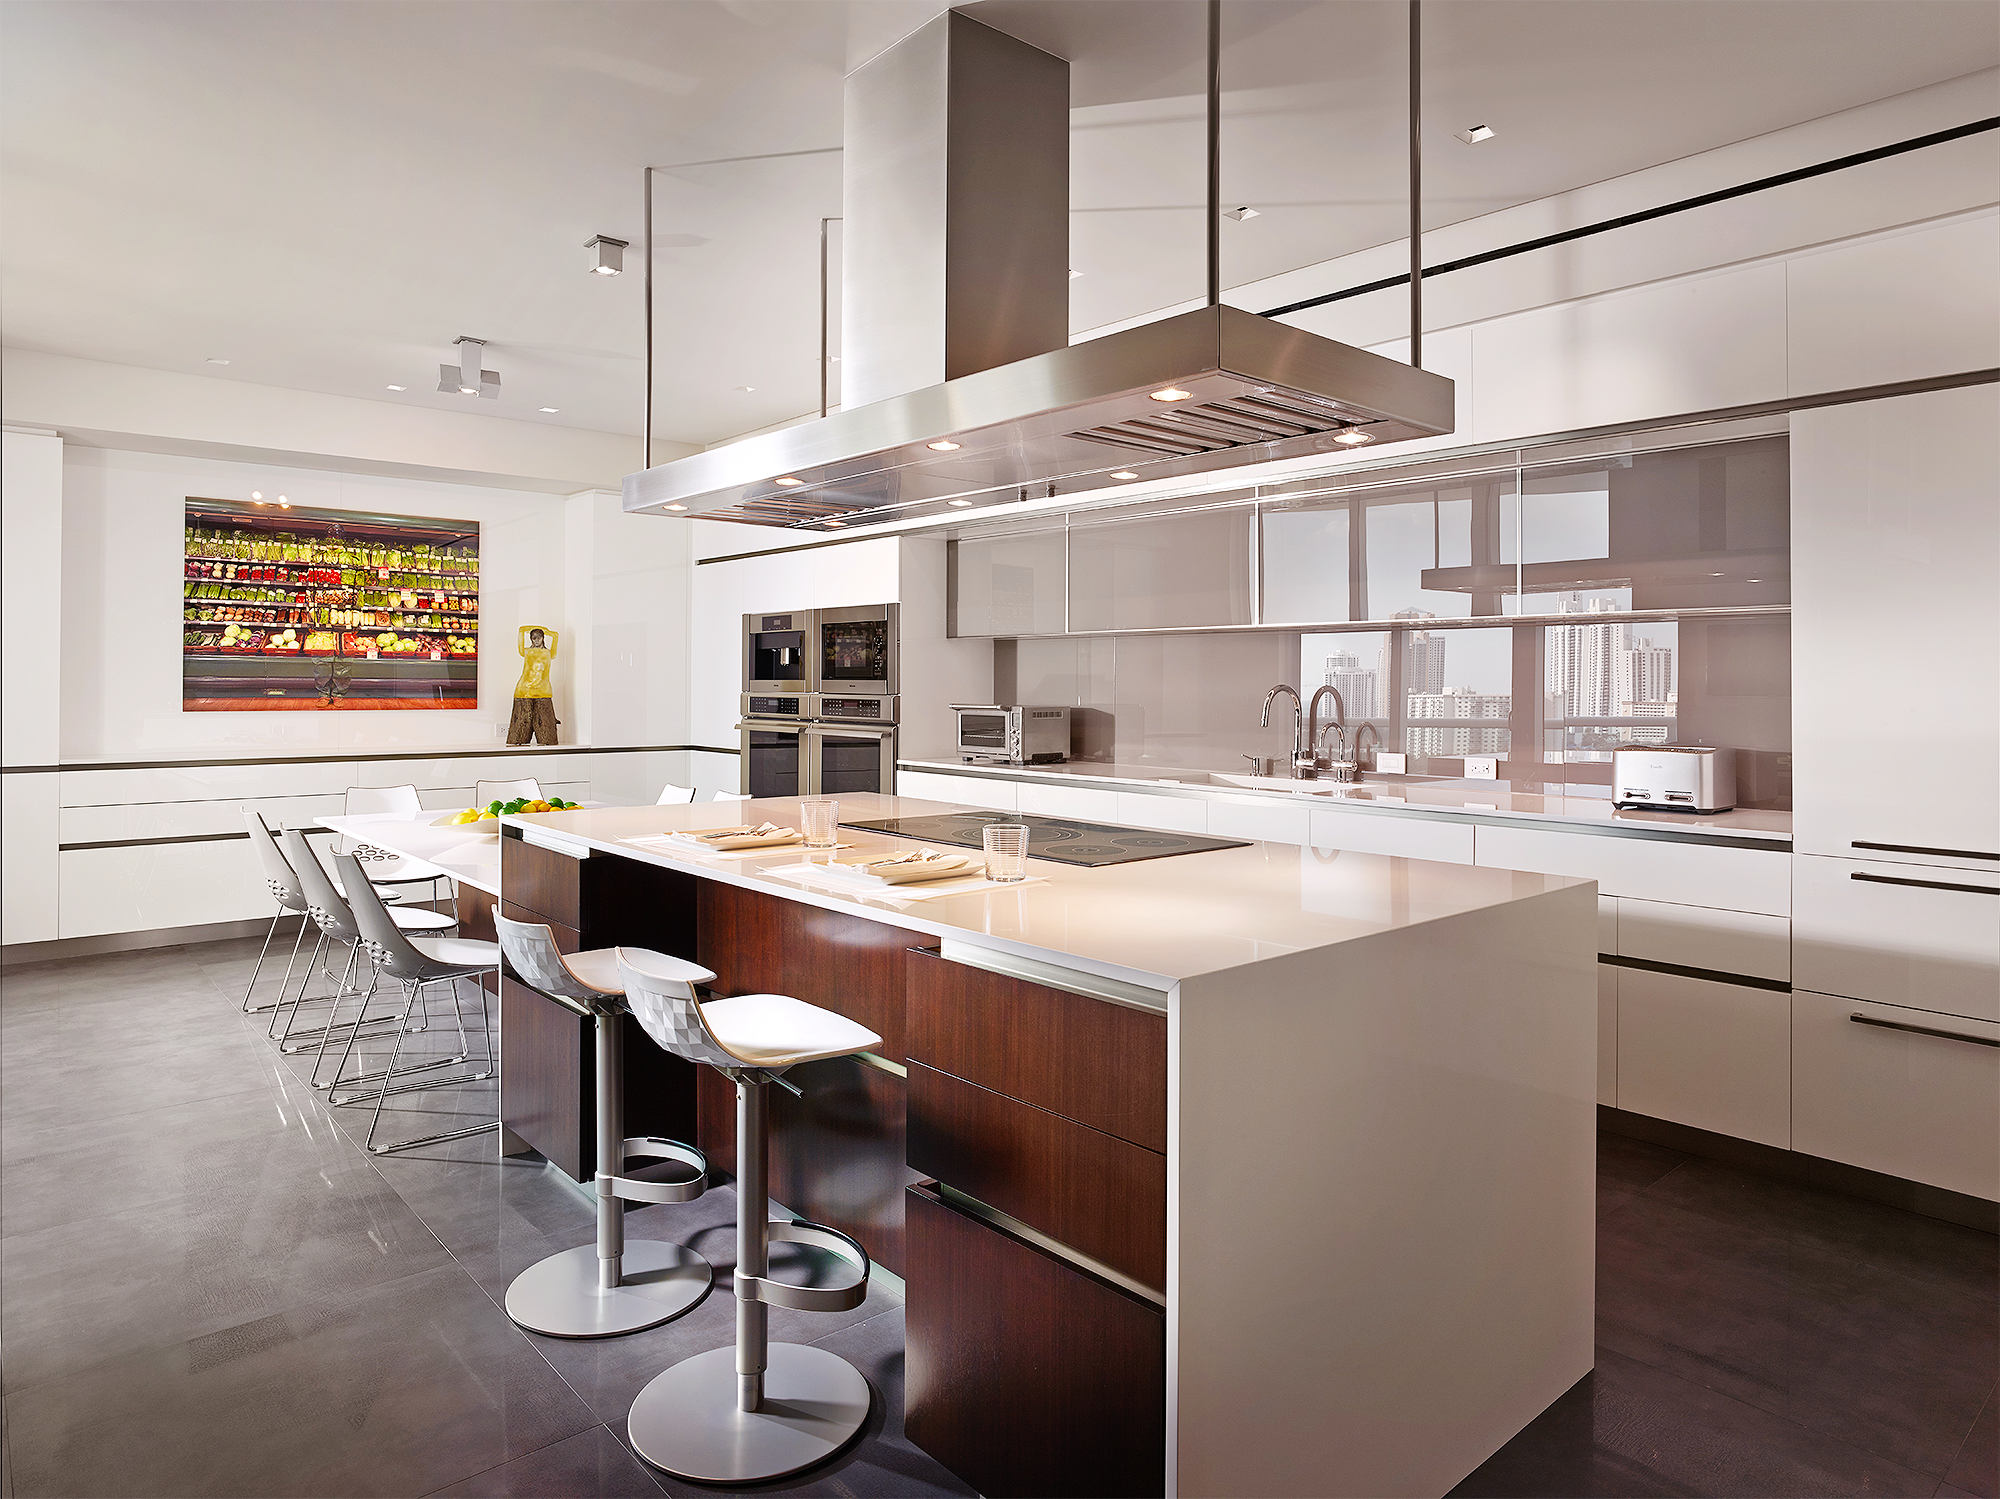 Gomberg_Kitchen-1.png